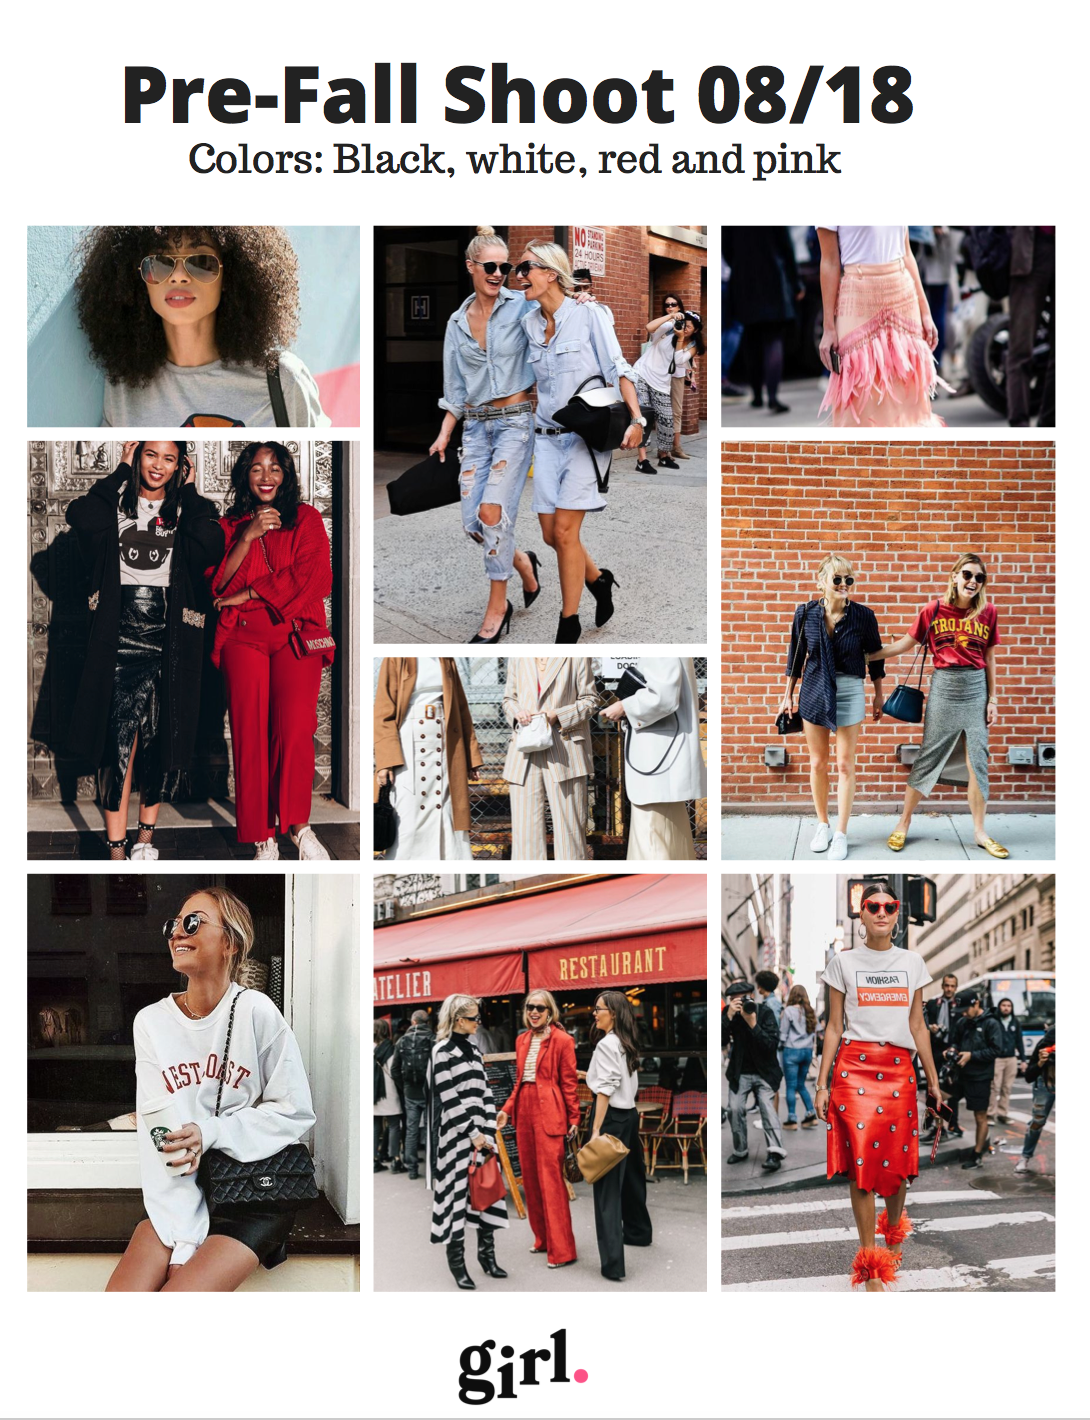 My girl stories fall 2018 photo shoot mood board with street style images from Pinterest.